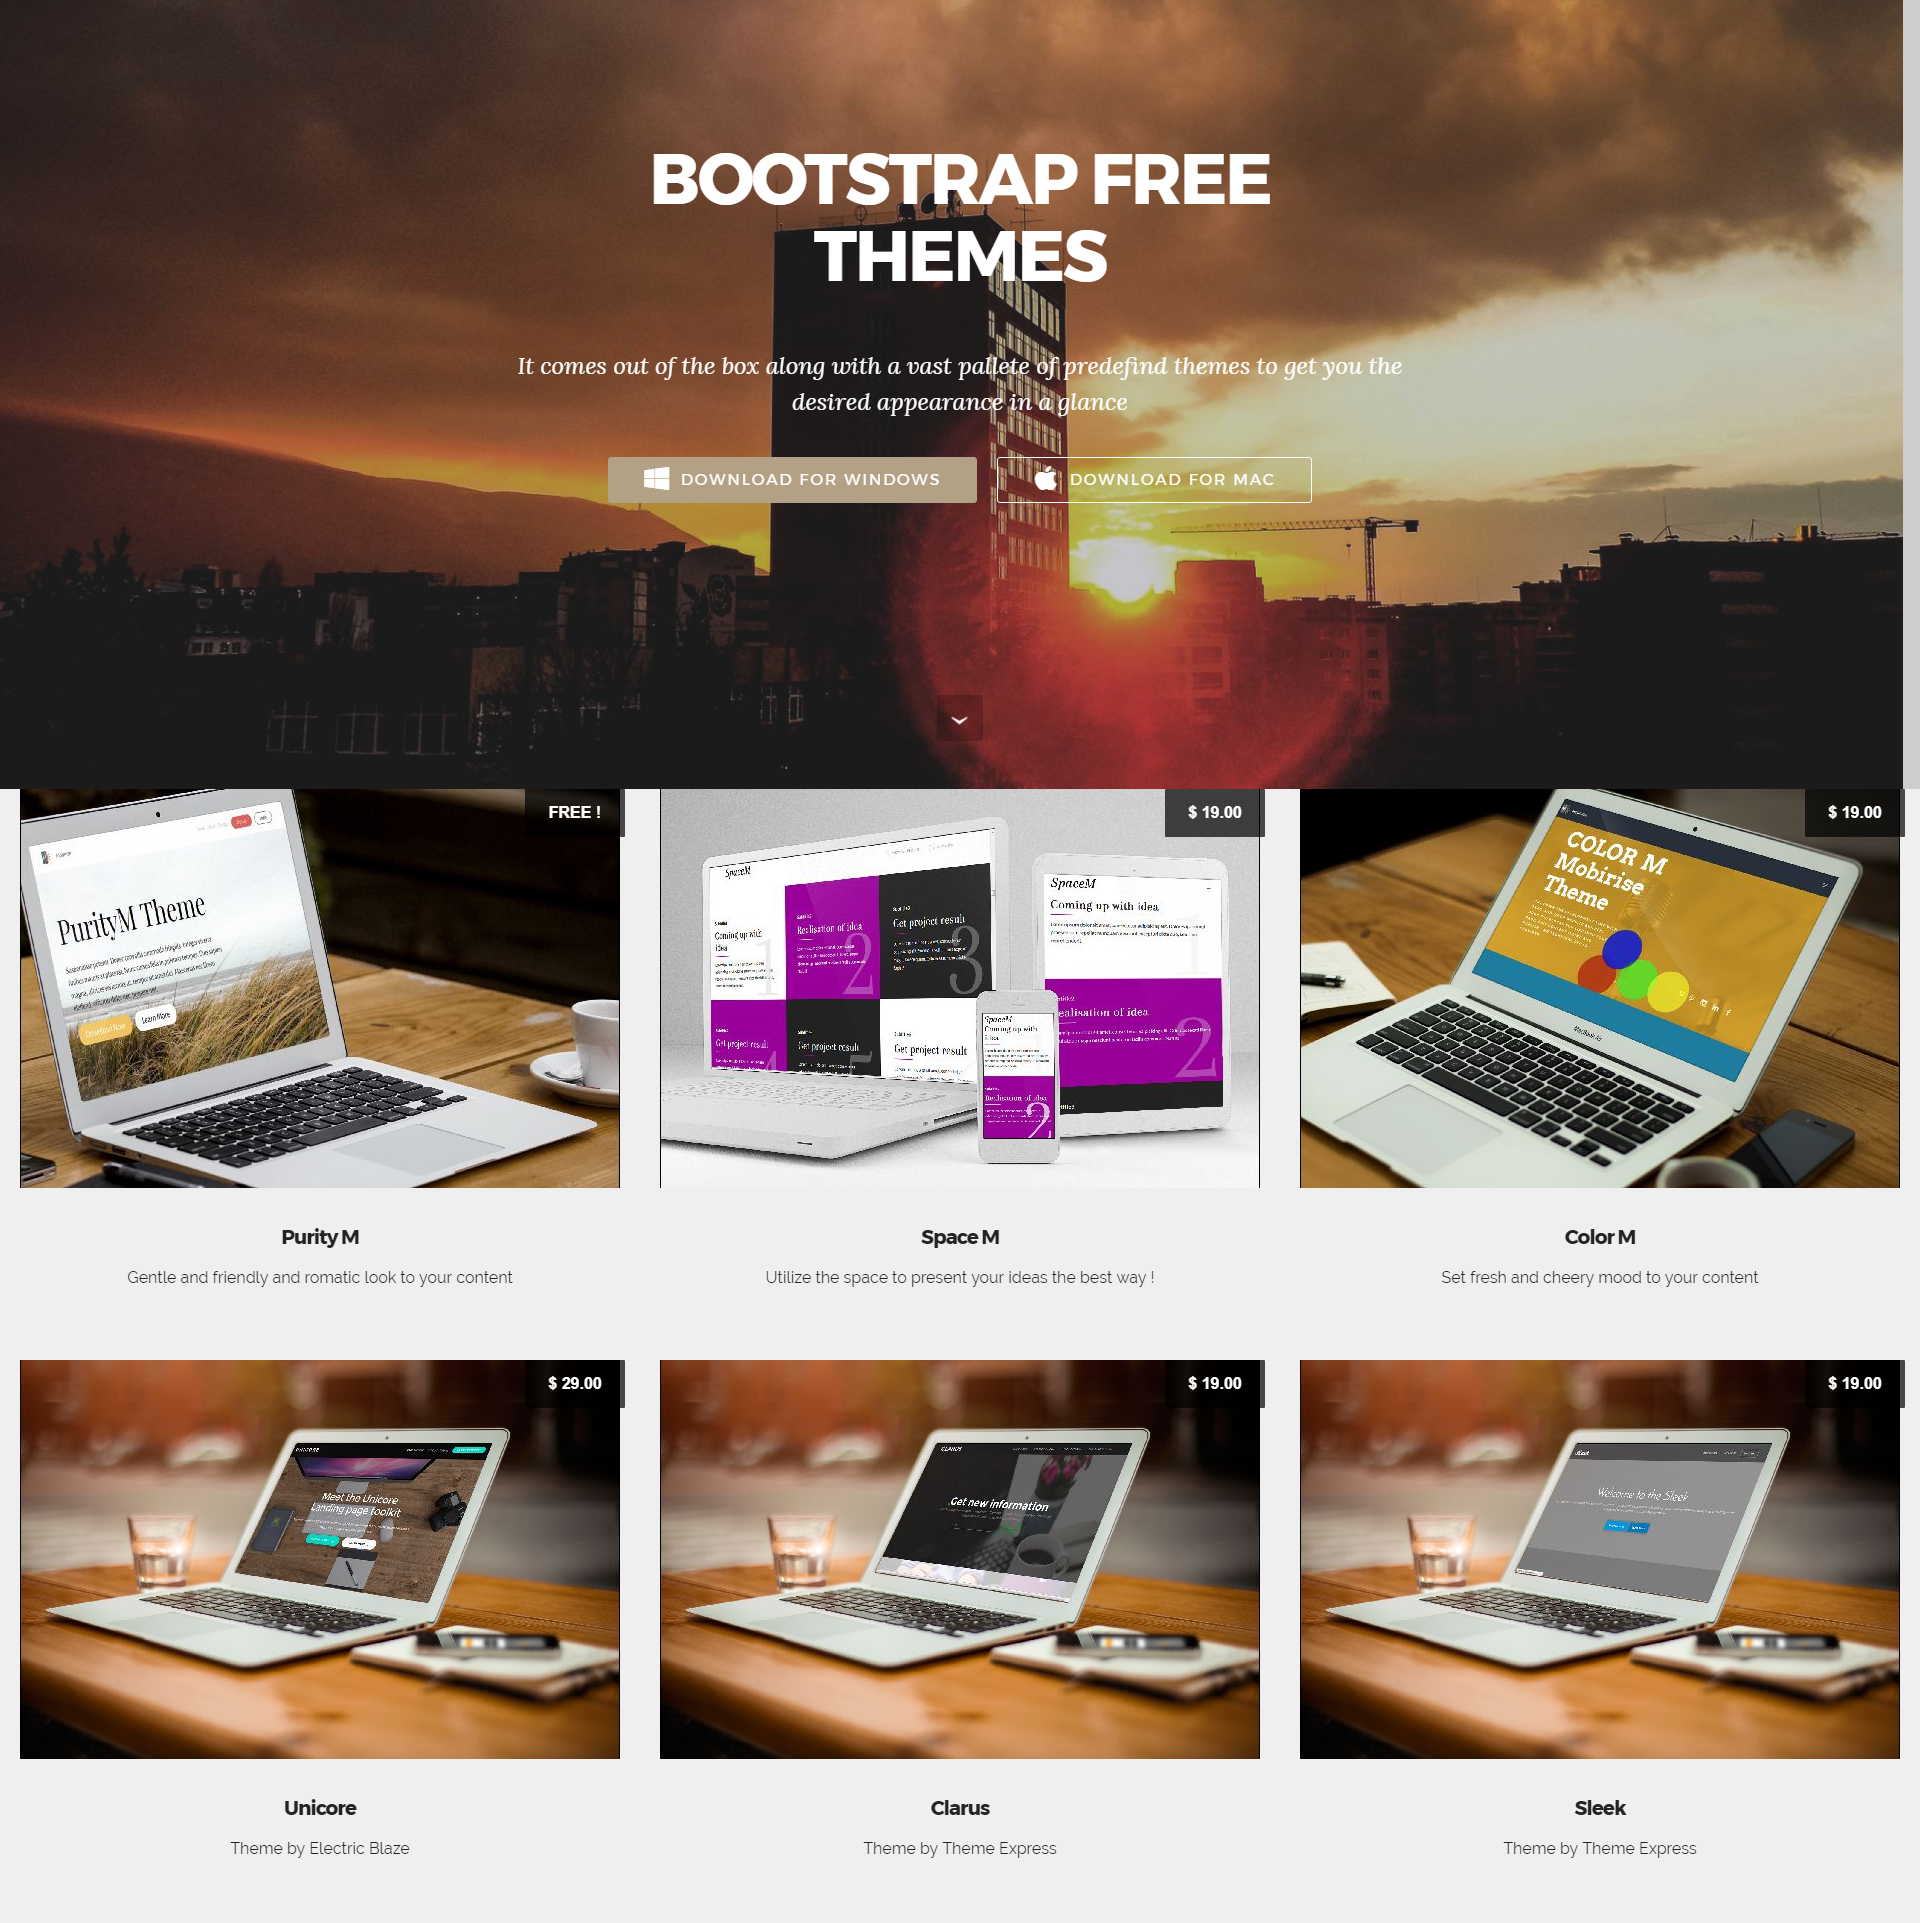 HTML Bootstrap Mobile-friendly Themes